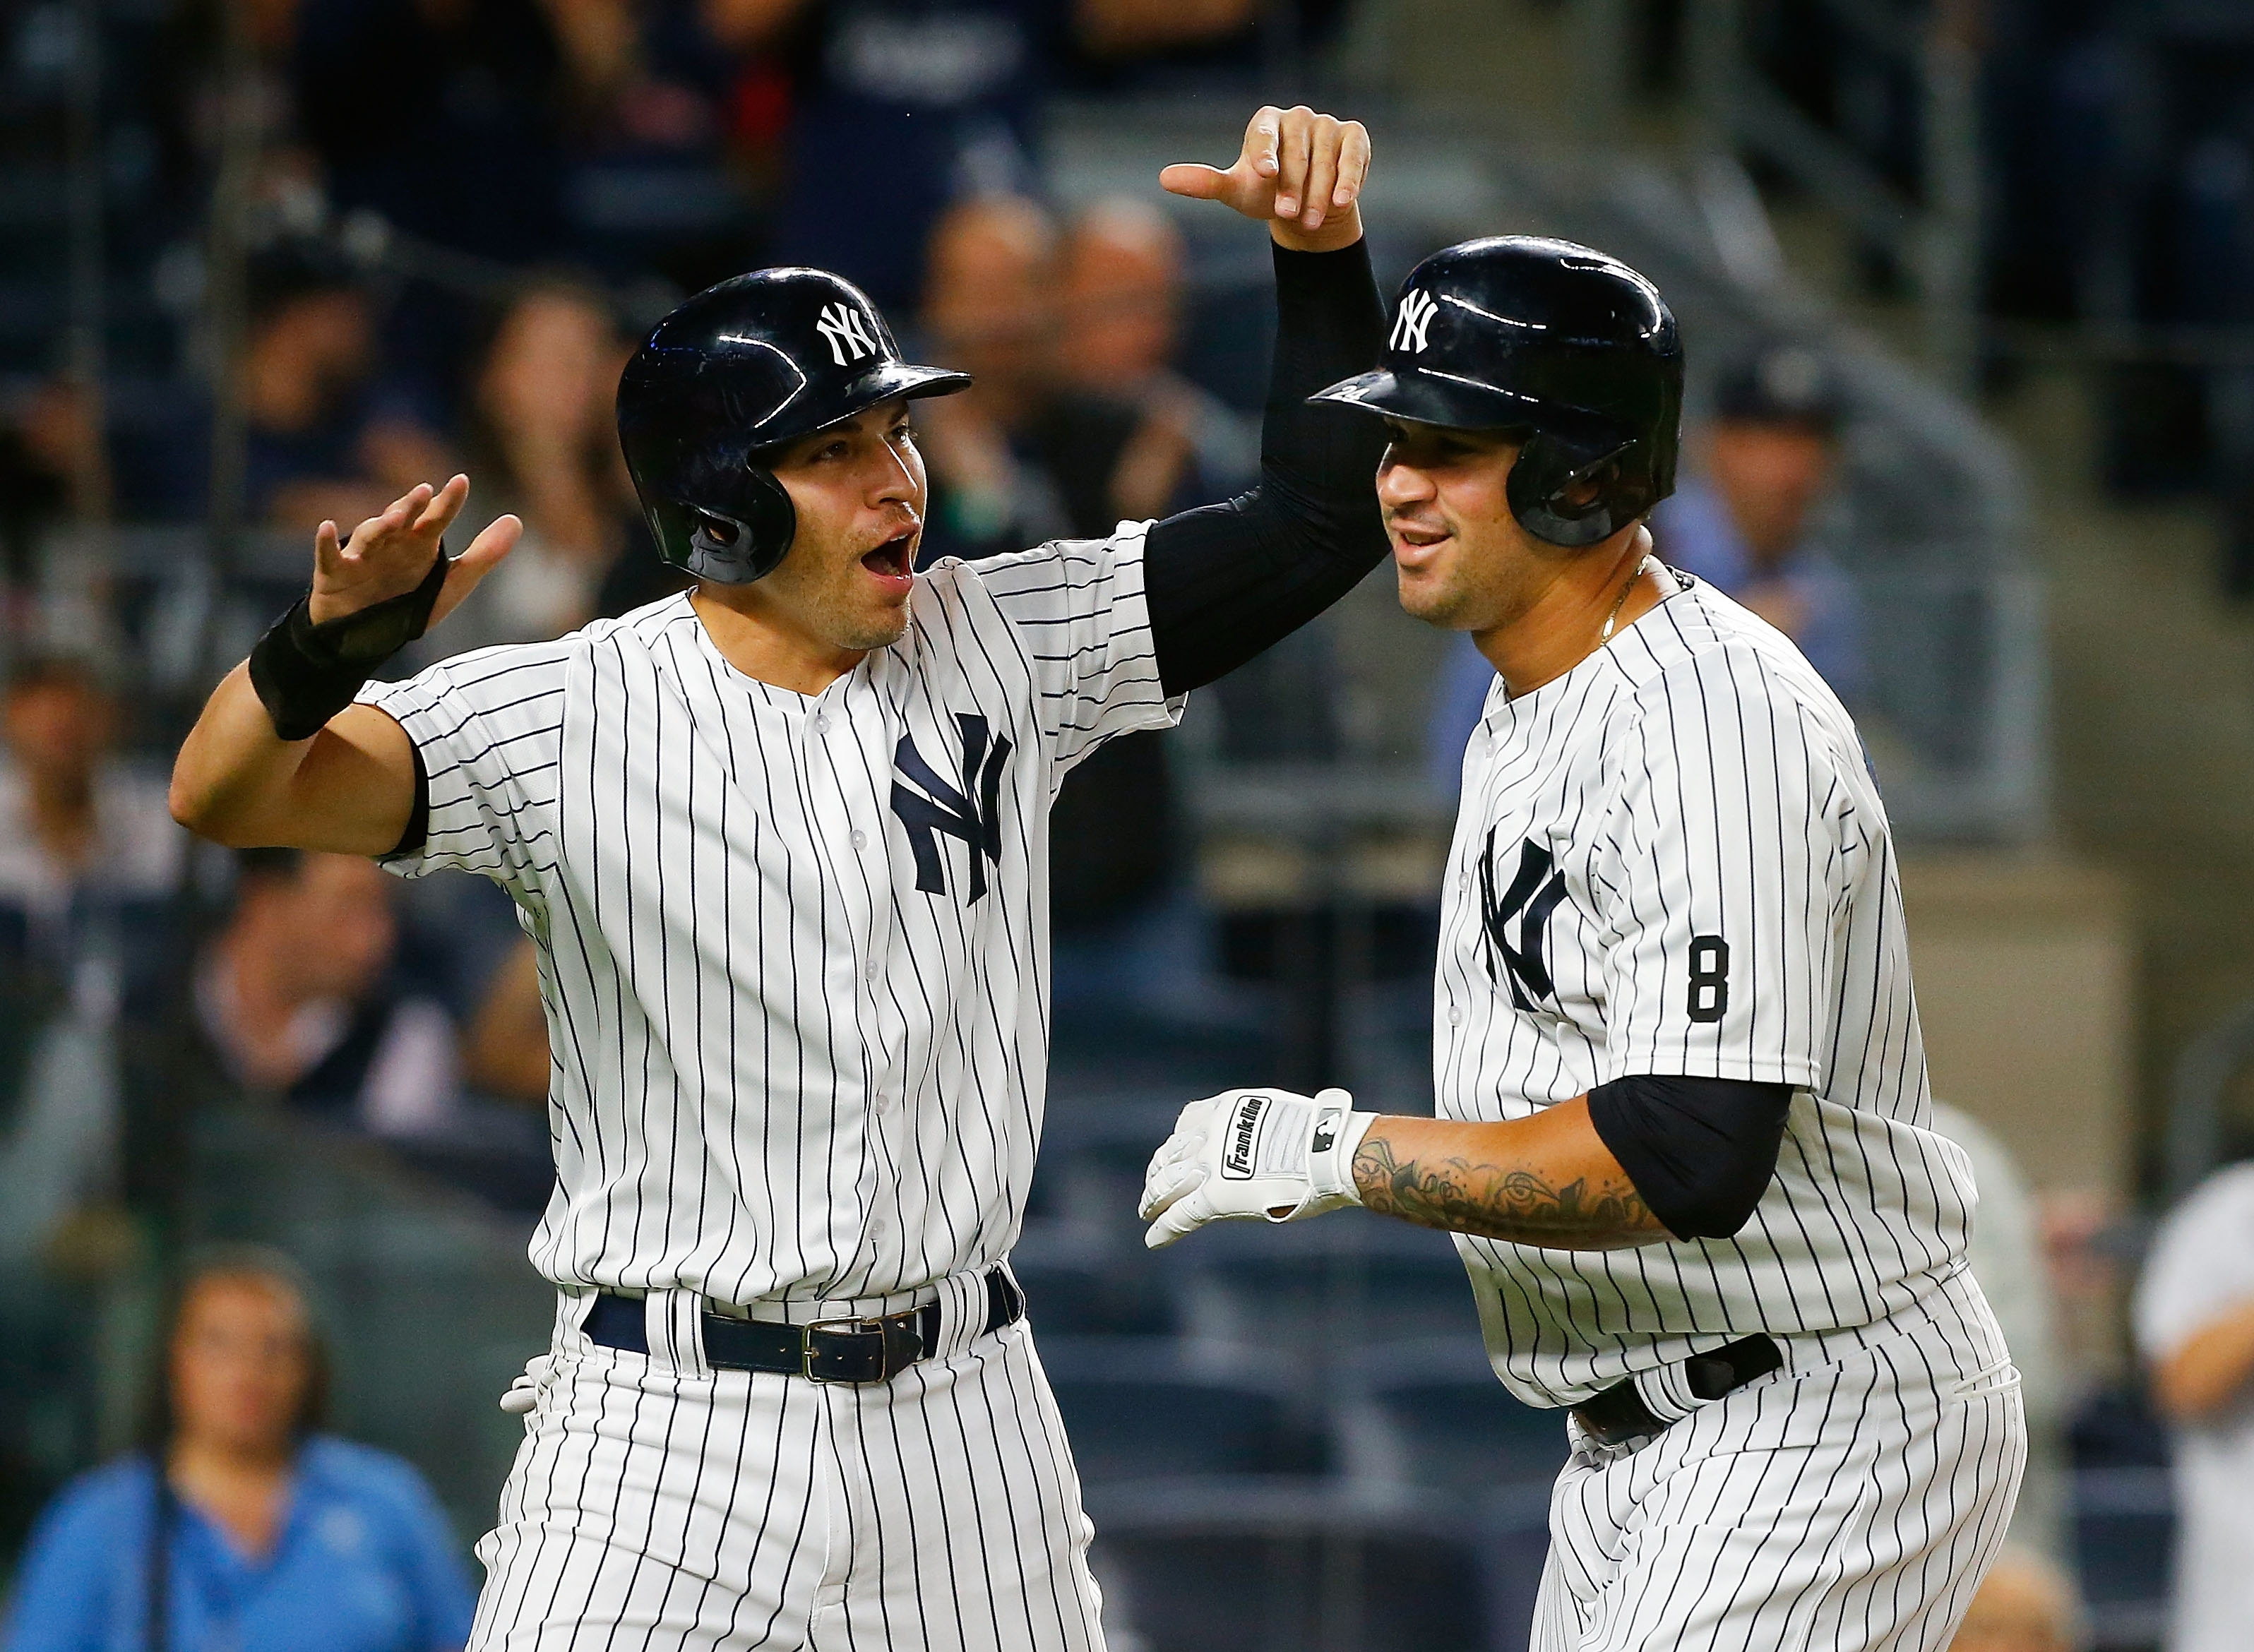 New York's Gary Sanchez celebrates his 20th home run of the season, all since early August, in the first inning rates his first inning two-run home run against the Boston Red Sox with teammate Jacoby Ellsbury #22 at Yankee Stadium on September 27, 2016 in the Bronx borough of New York City.  (Photo by Jim McIsaac/Getty Images)